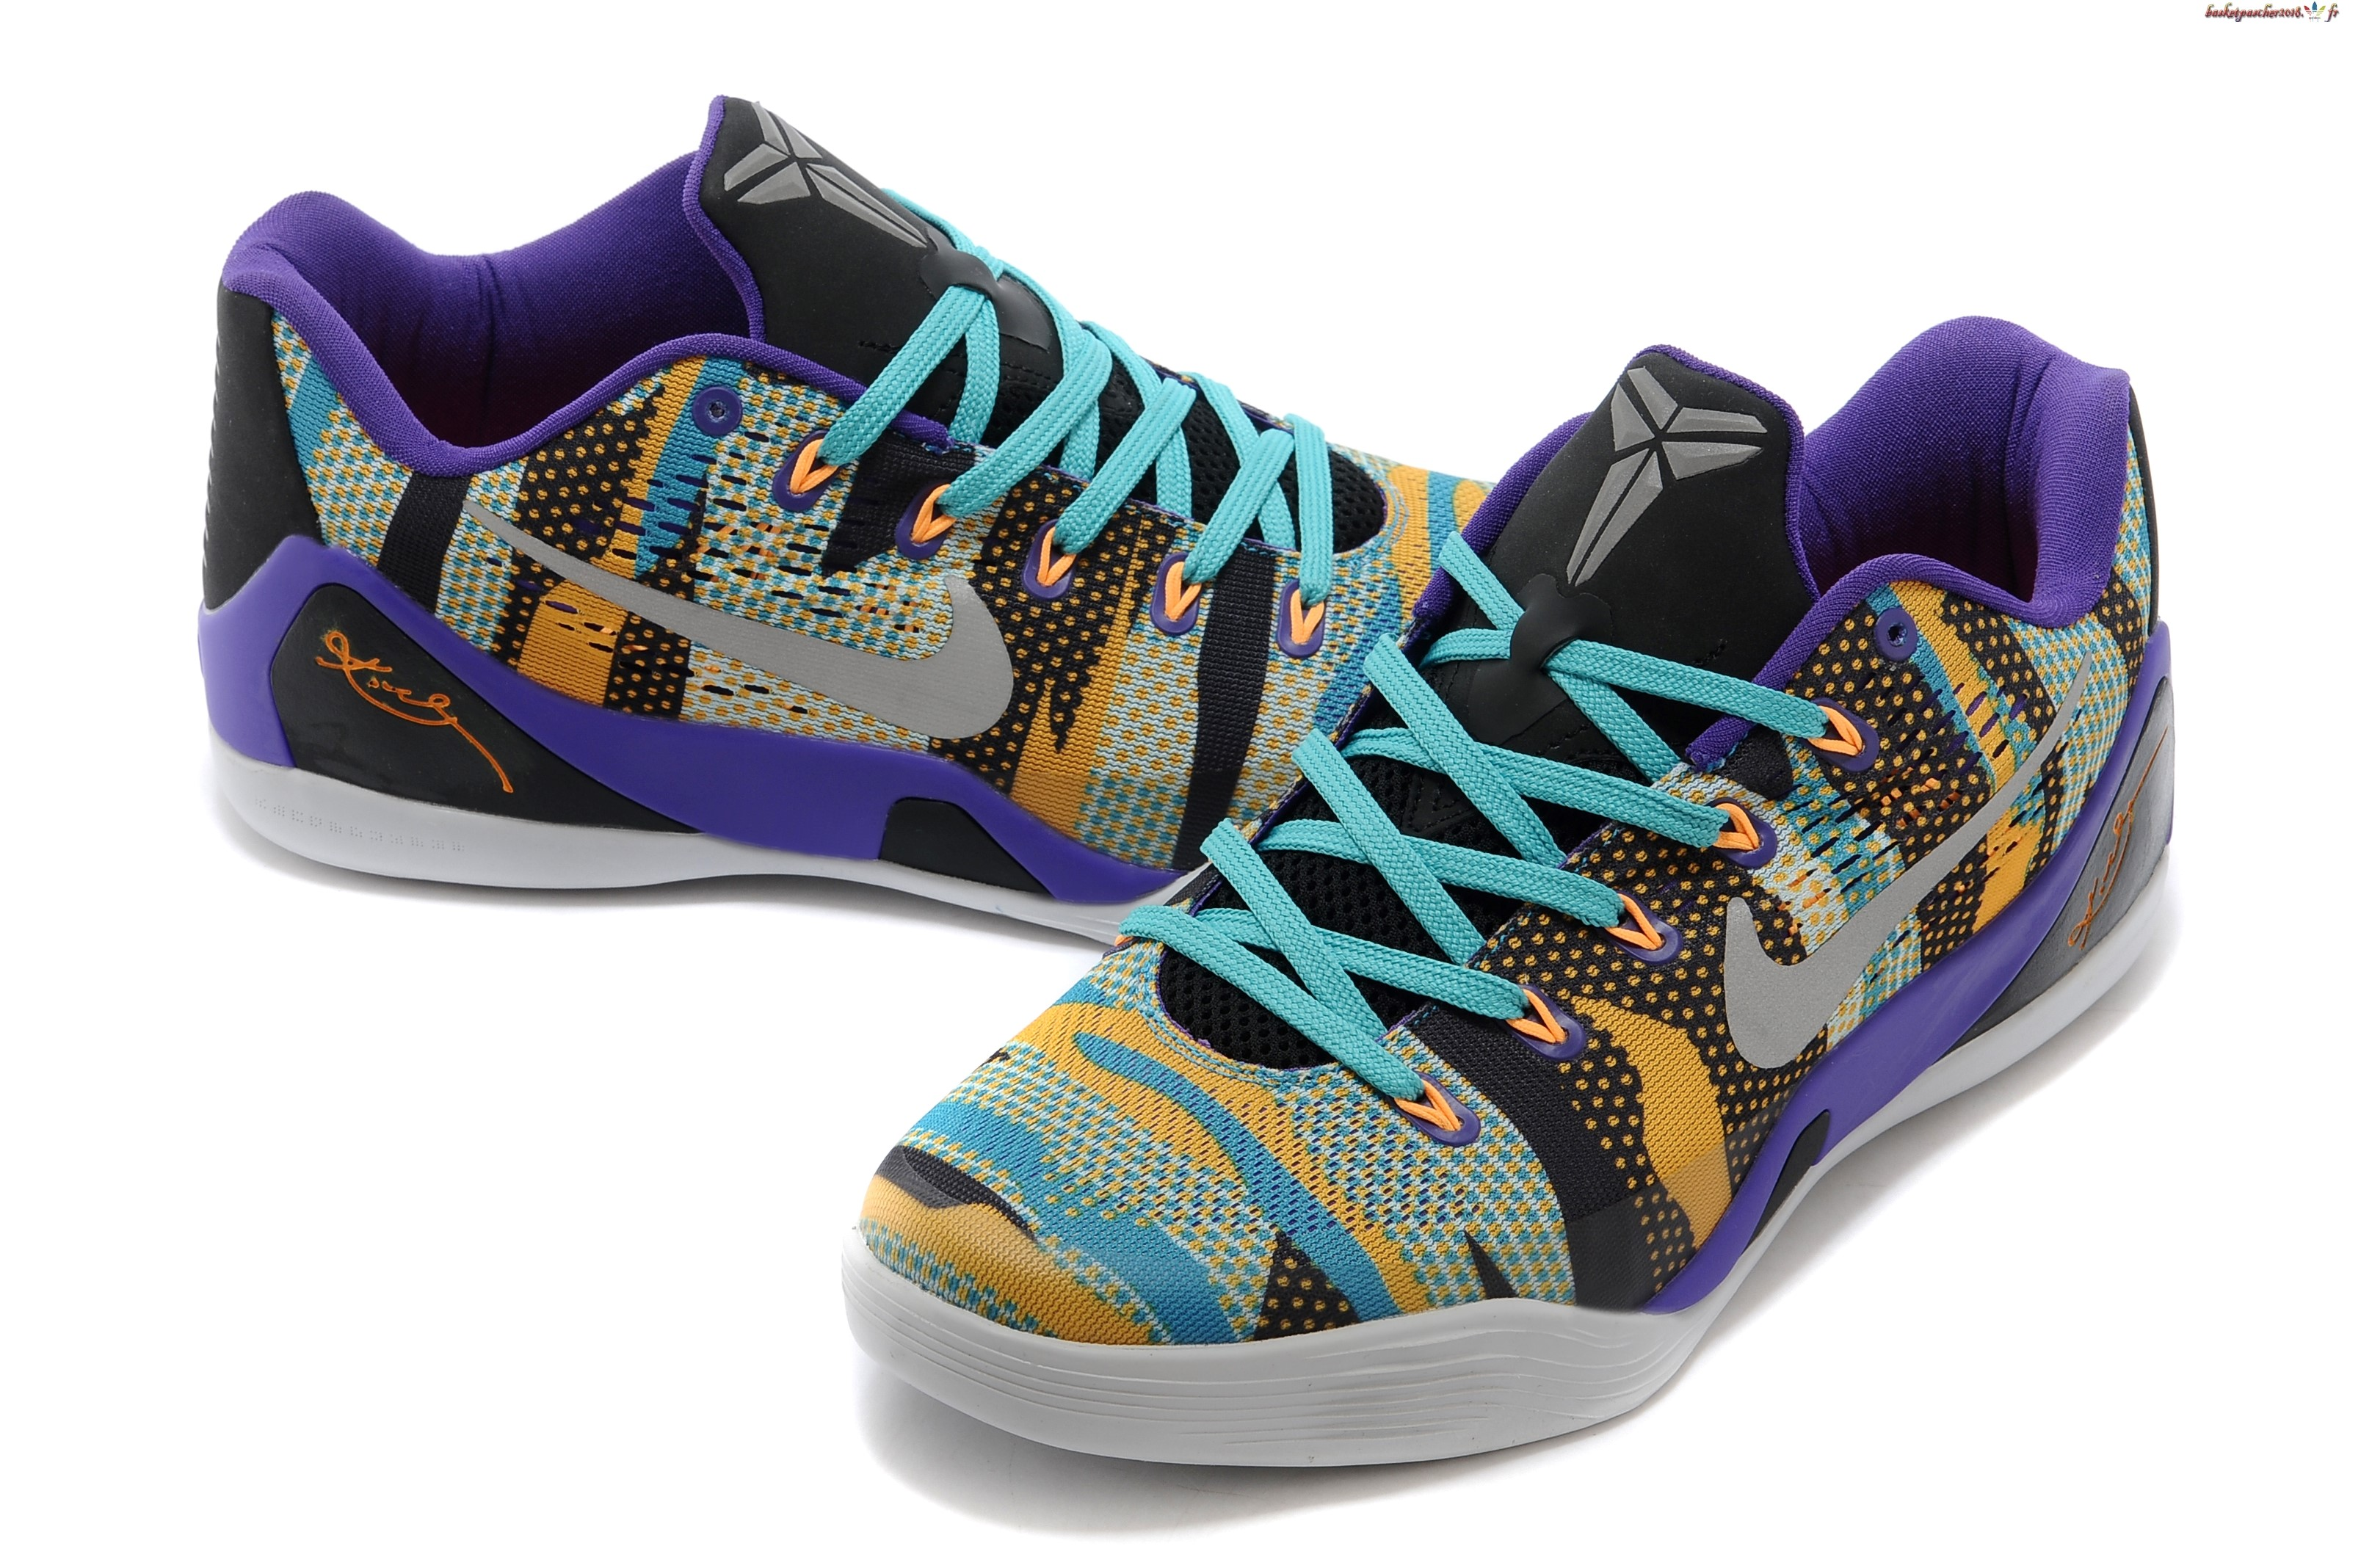 4740cd8ddf1f ... discount code for vente chaude chaussures de basketball femme nike kobe  9 elite gris pourpre blanc